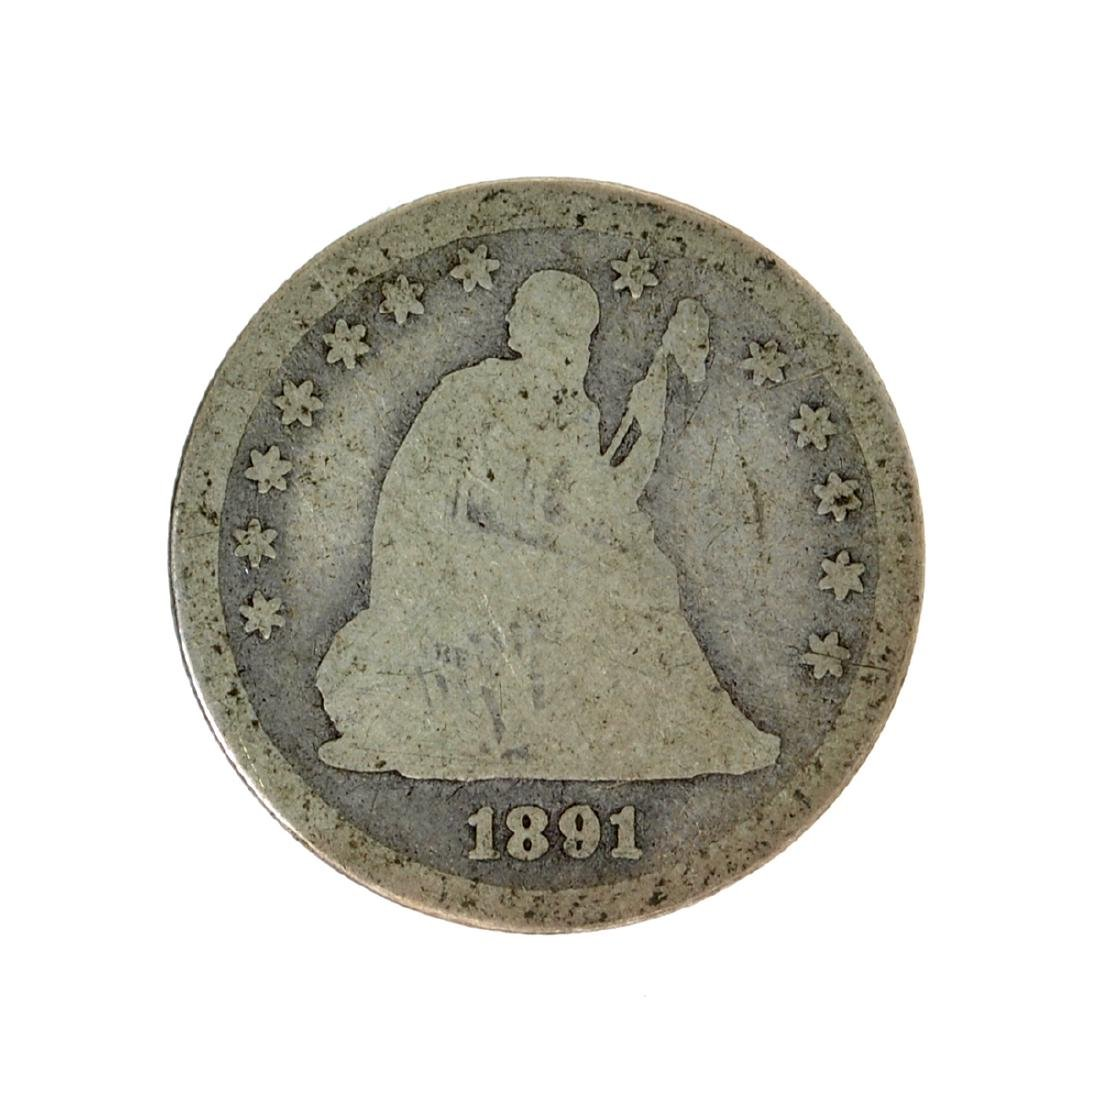 1891 Liberty Seated Quarter Dollar Coin